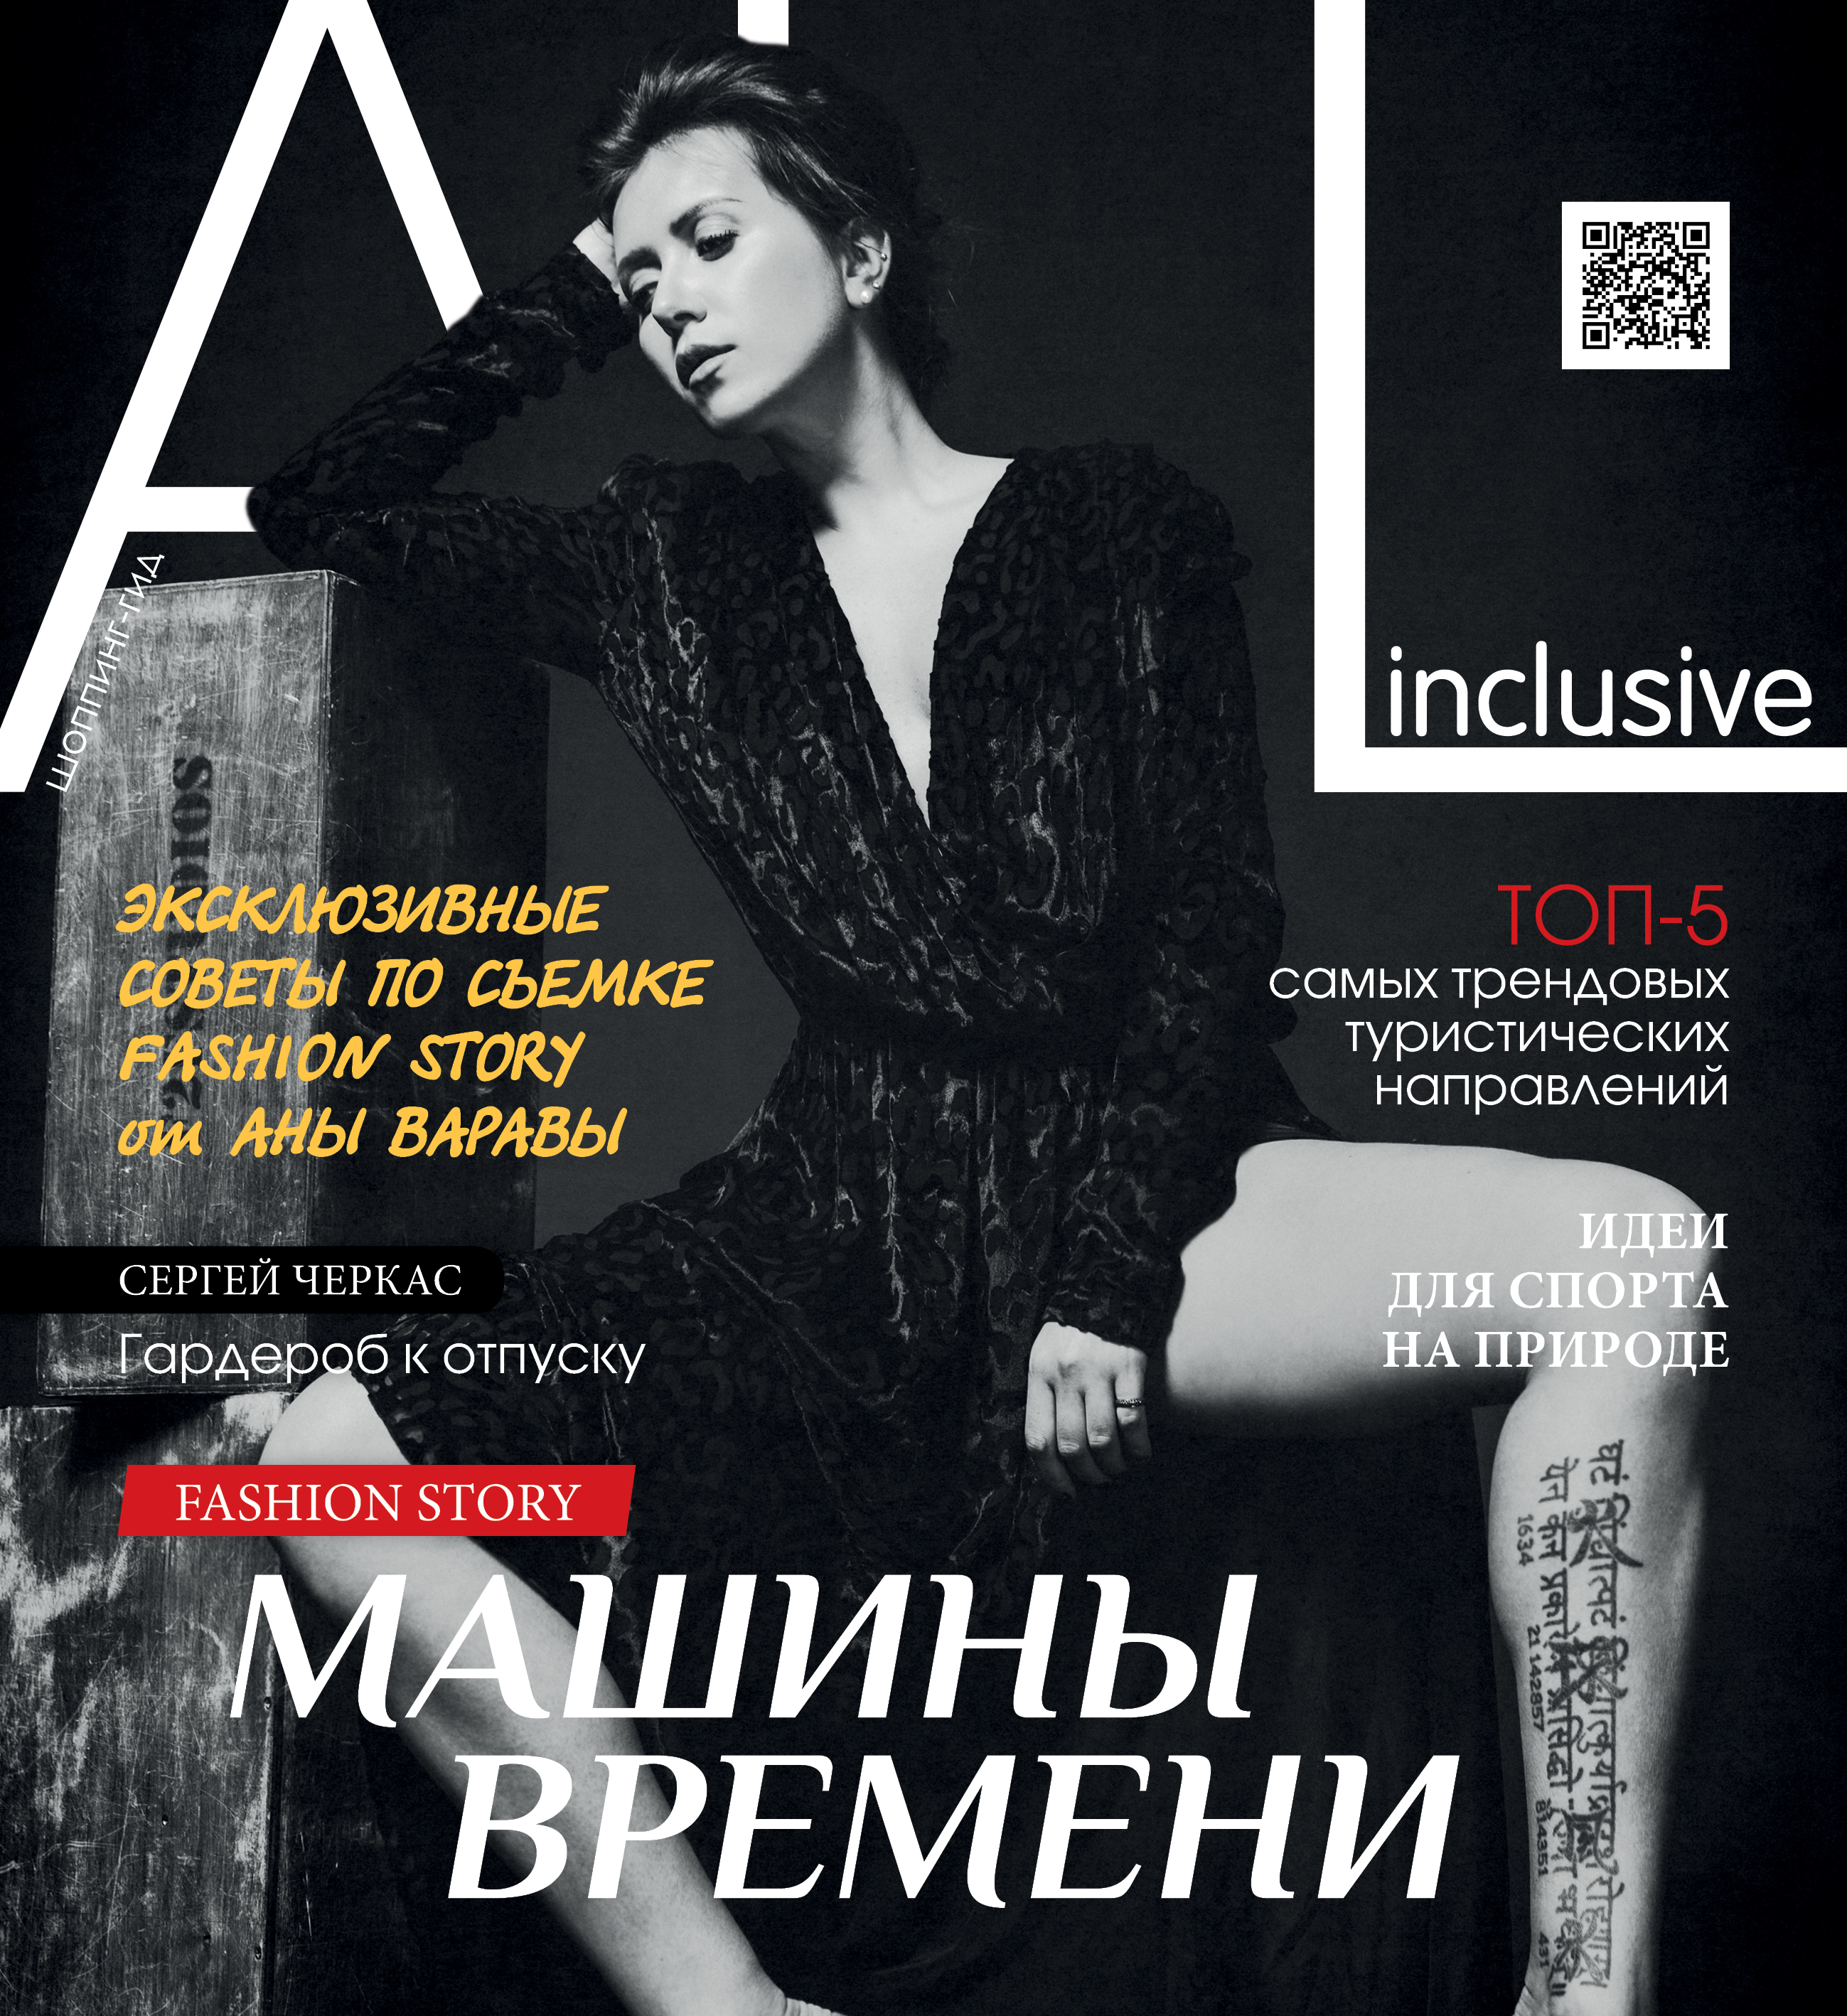 All Inclusive 22 2016 220x240 q 1 - Партнёр Dnepr Fashion Weekend: Audio School by Max Pollyul